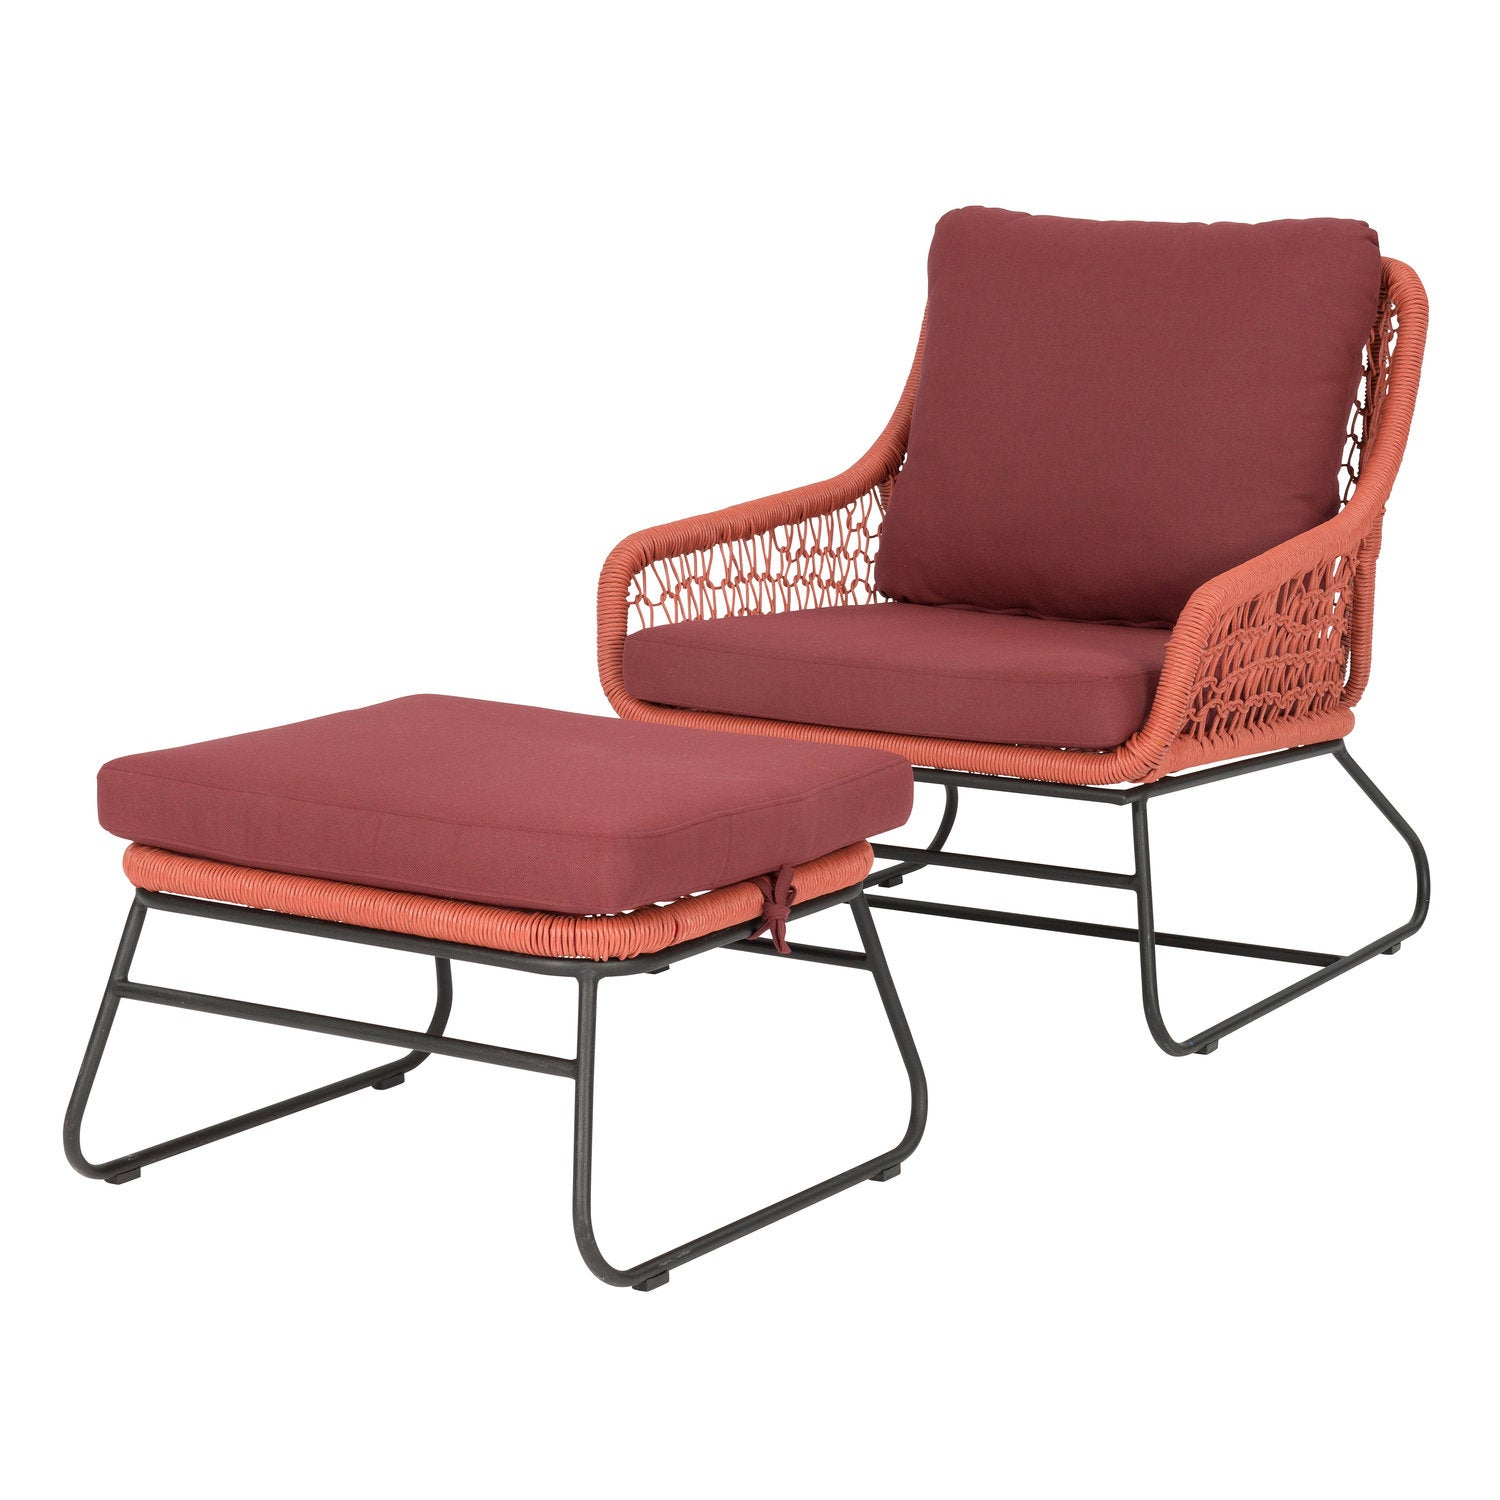 Intratuin loungestoel met hocker Portofino wicker terracotta